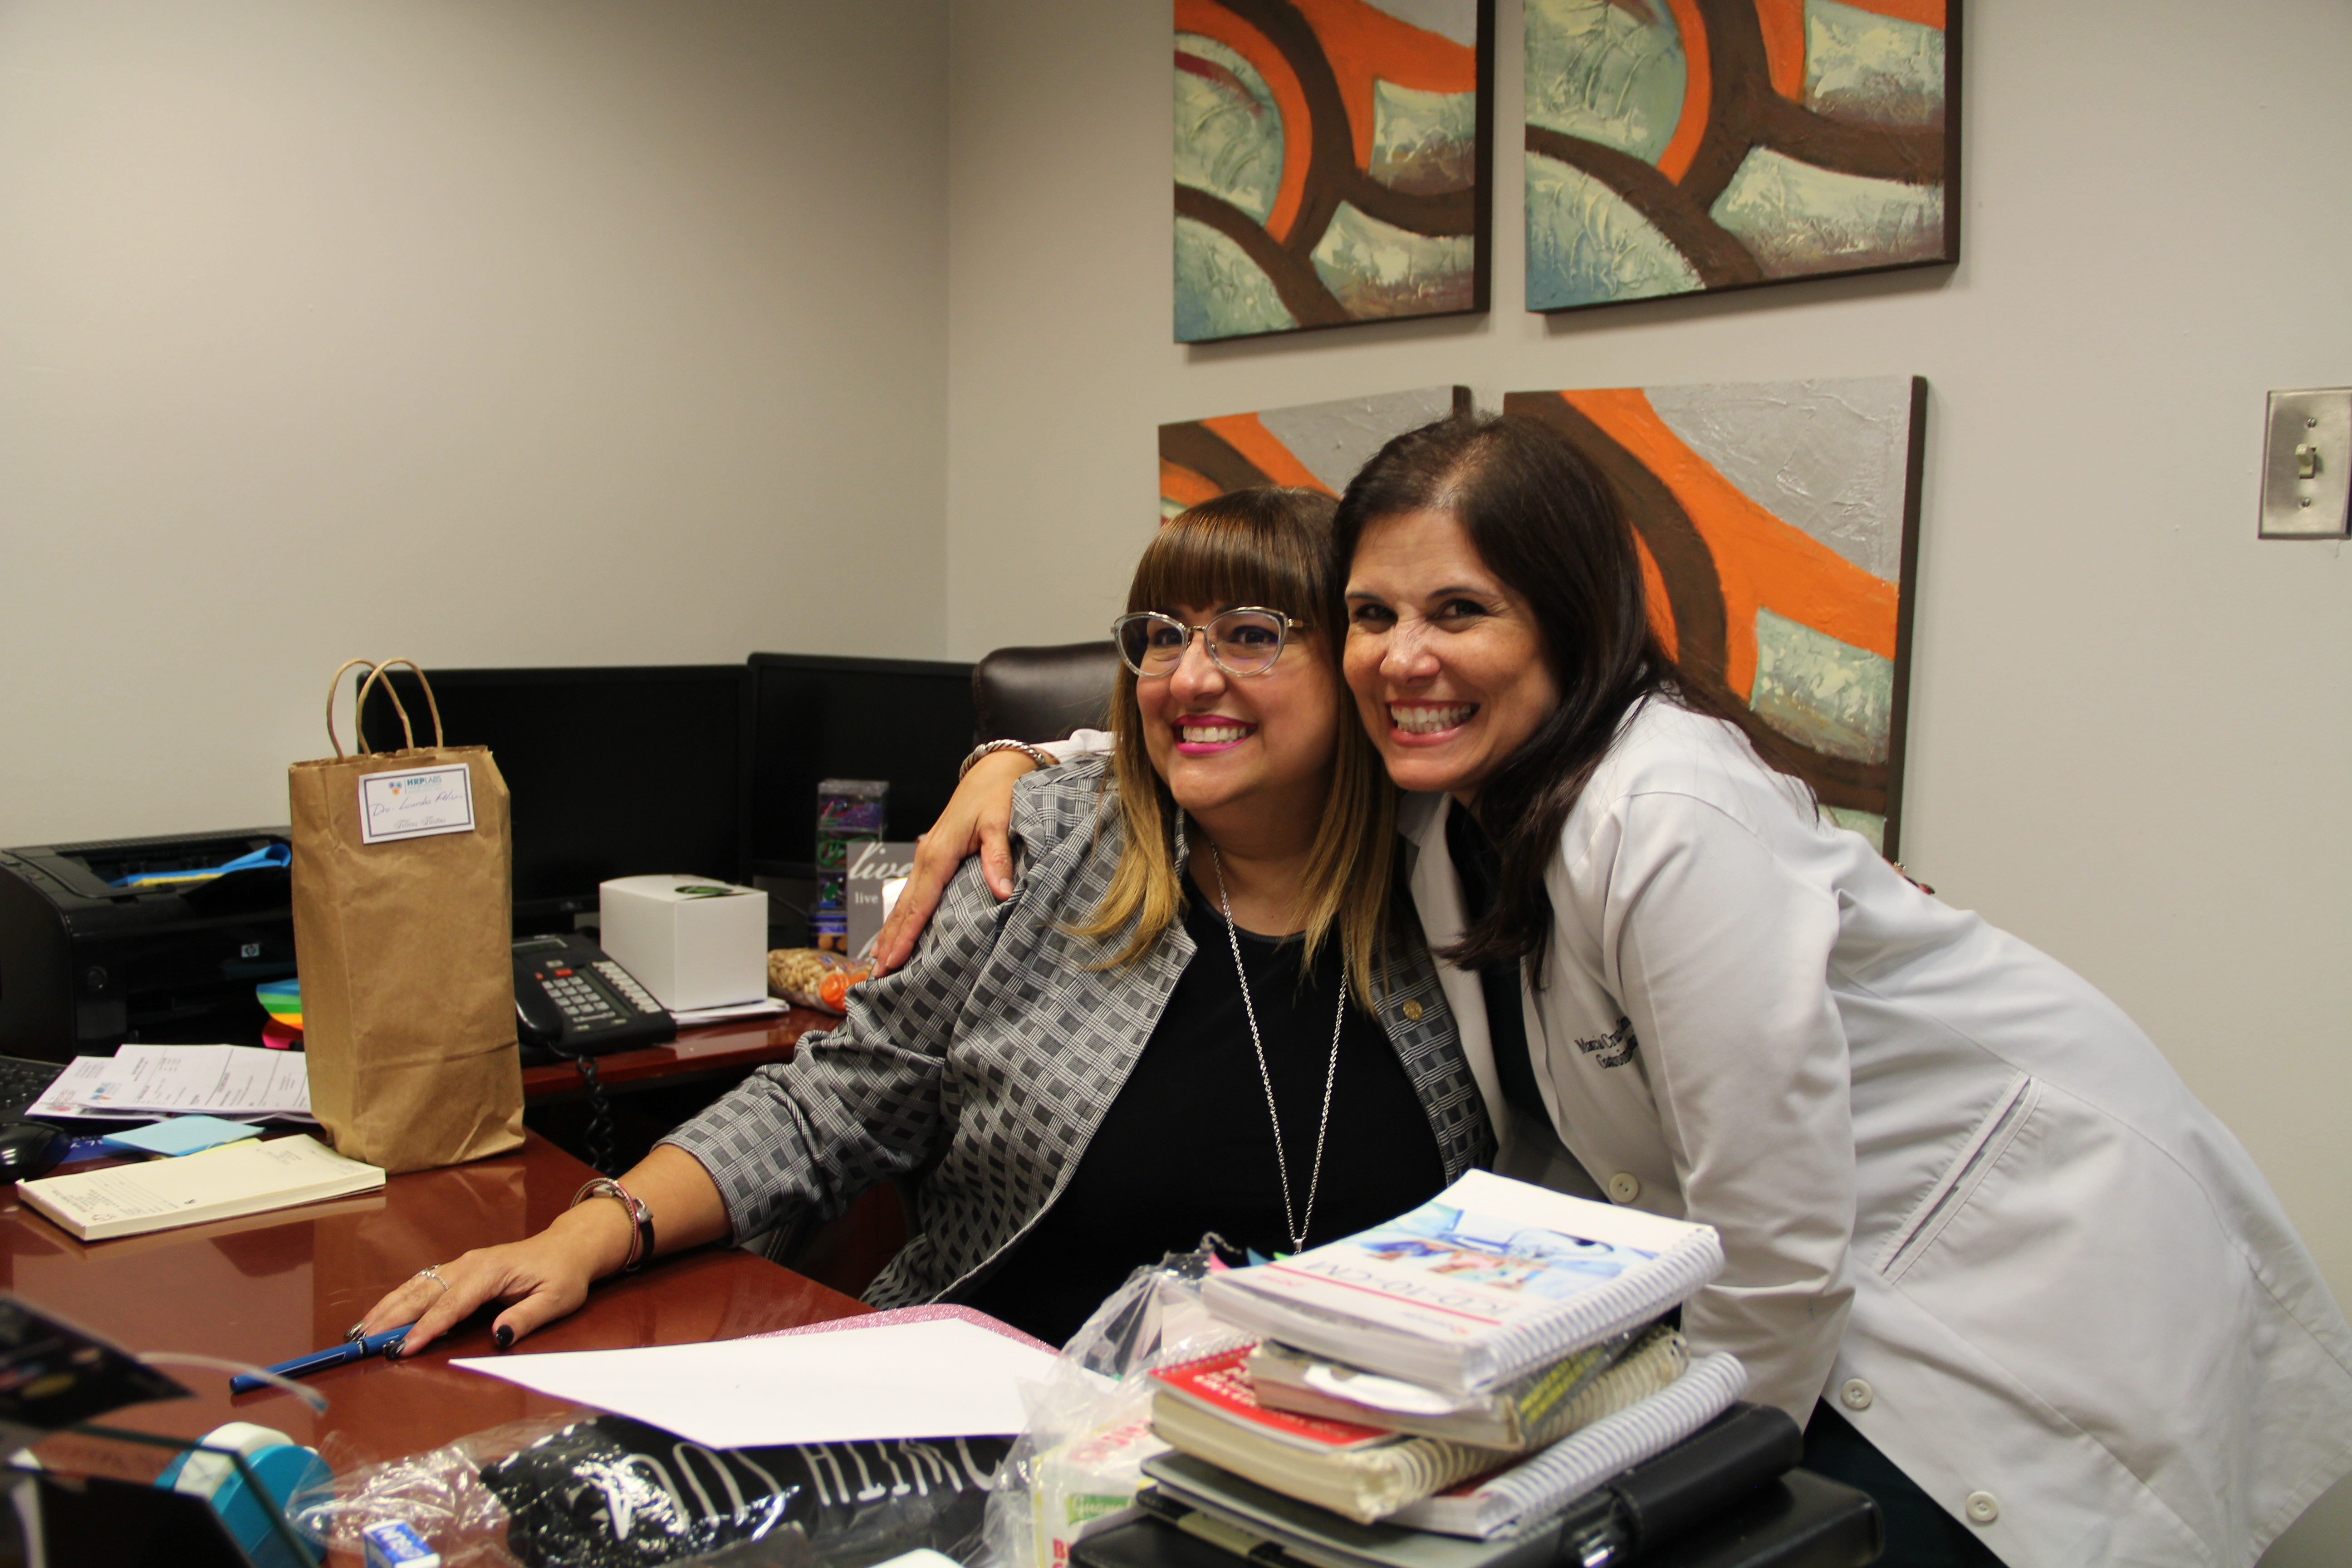 Lourdes Feliciano Lopez, MD, and Marcia Cruz-Correa, MD, PhD